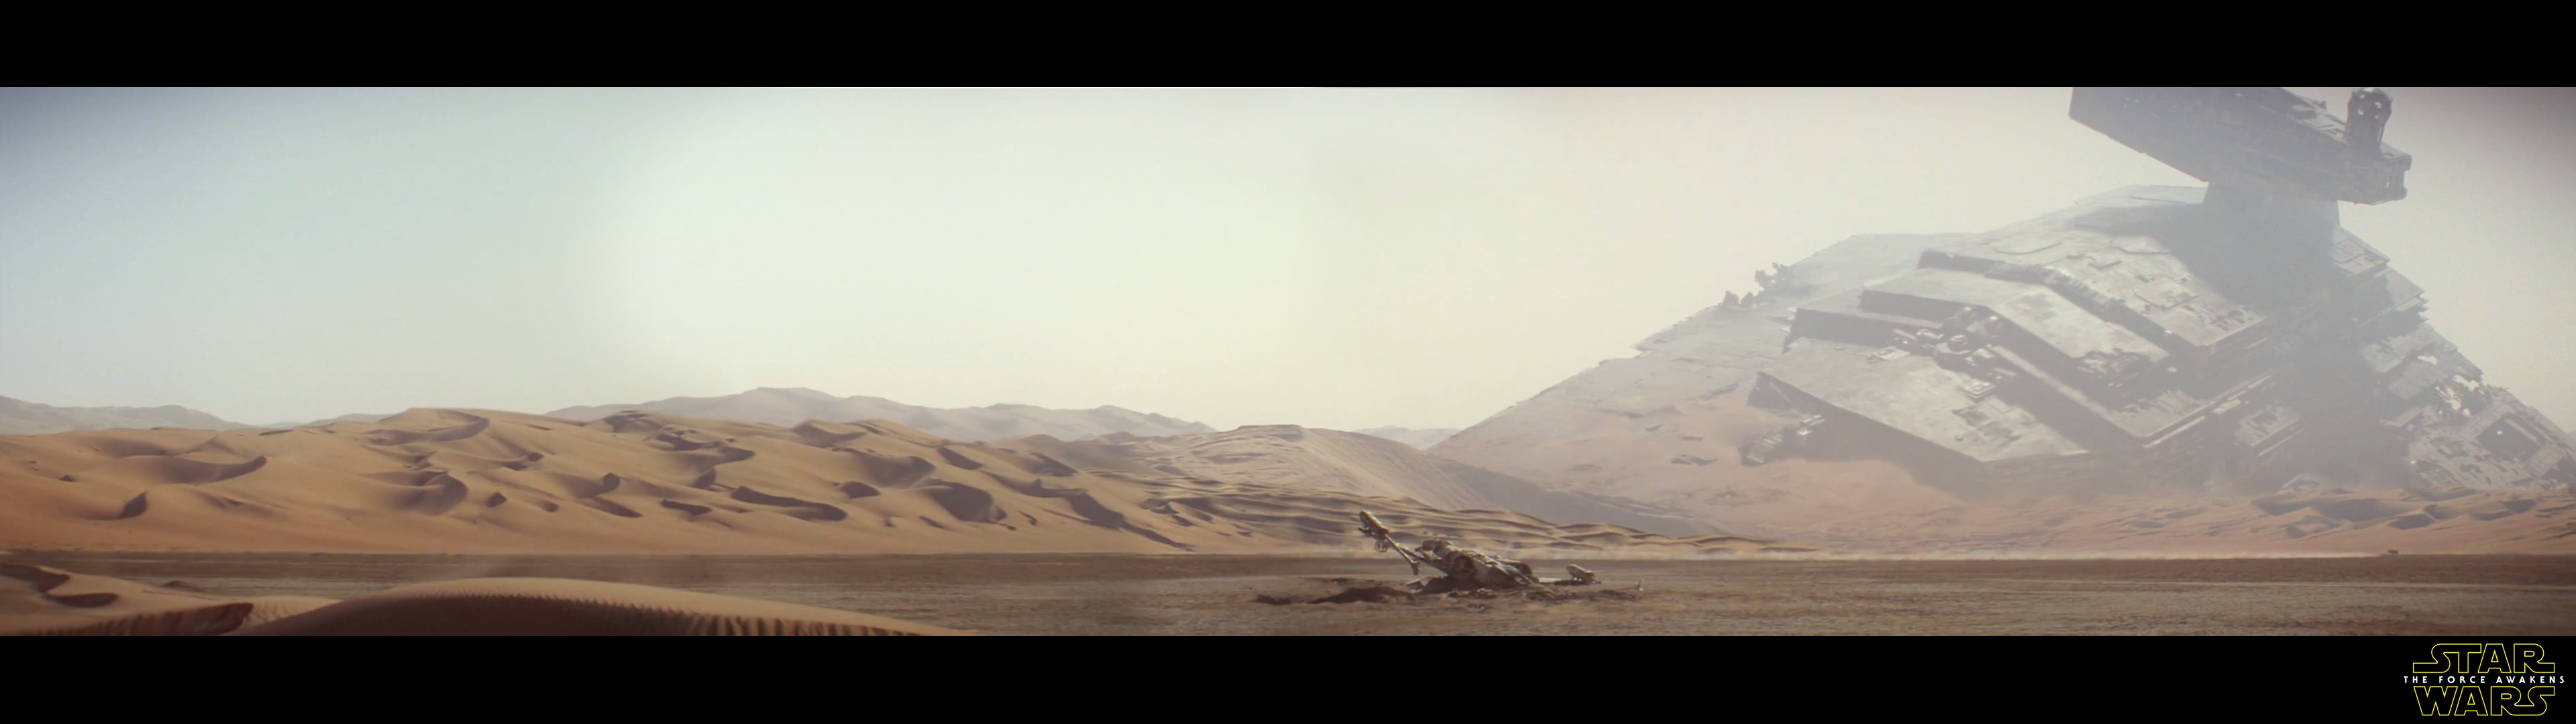 Star Wars Dual Monitor Wallpaper Reddit 3840x1080